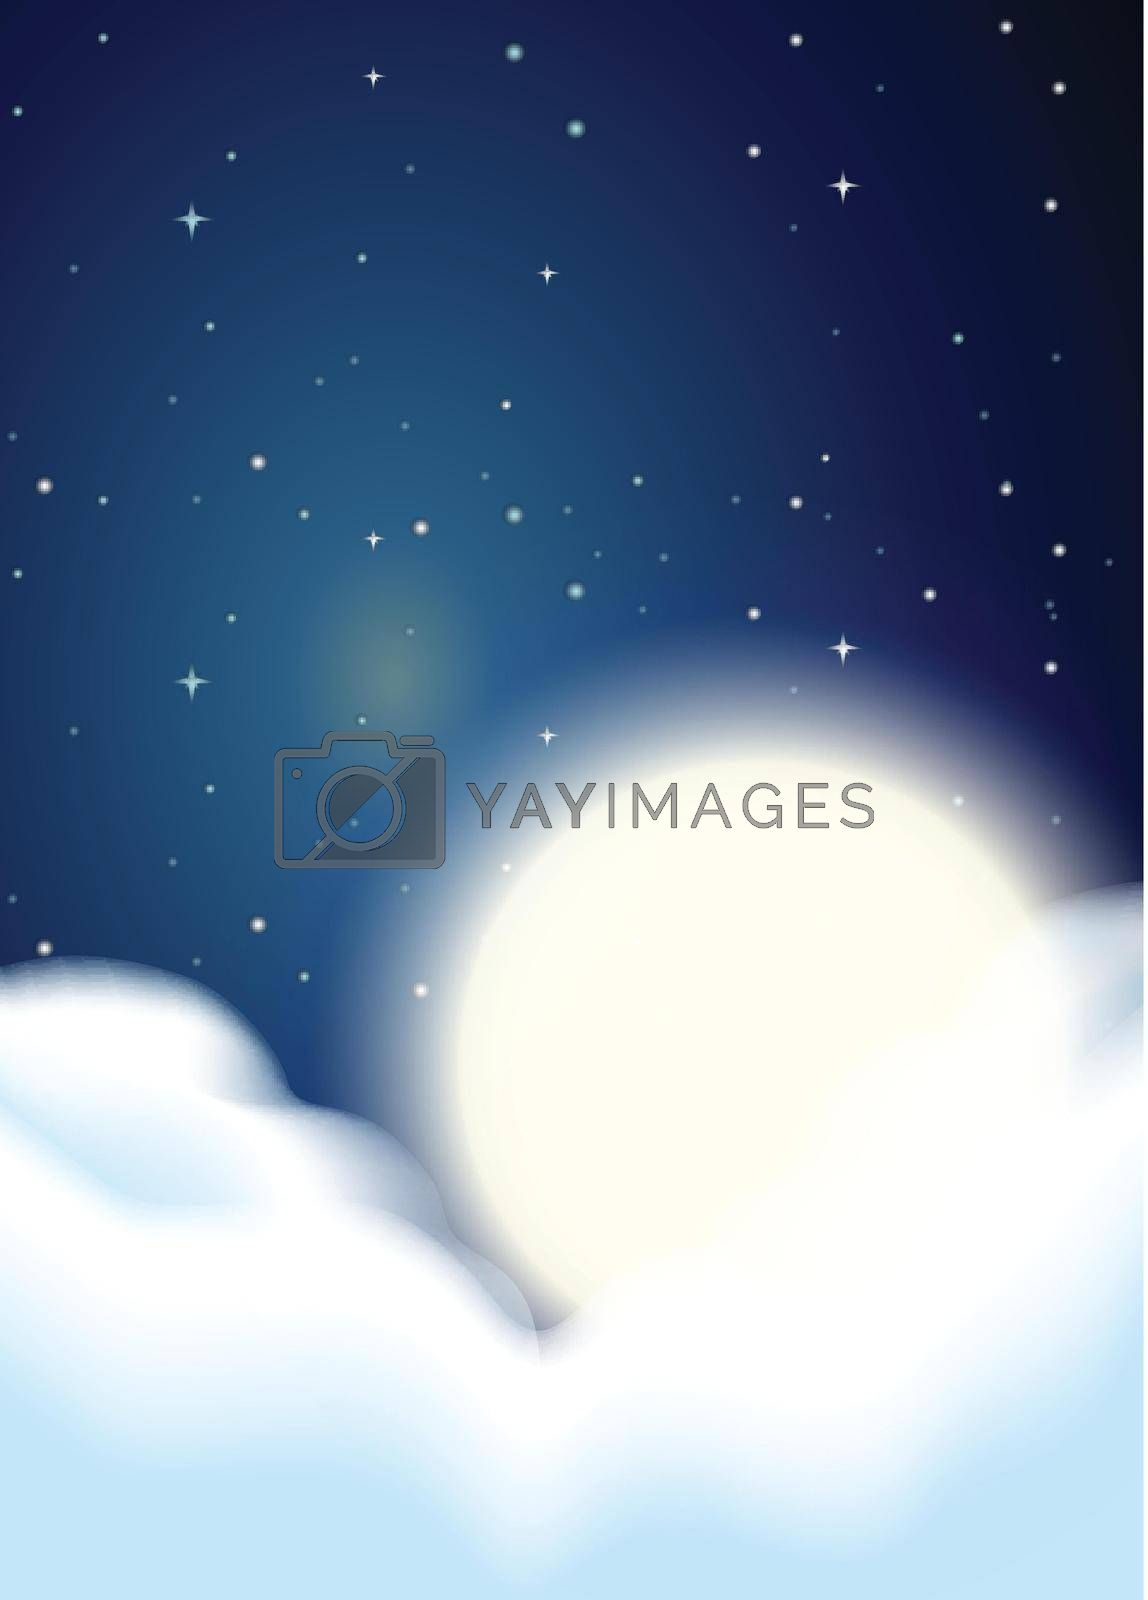 Full moon and clouds background illustration